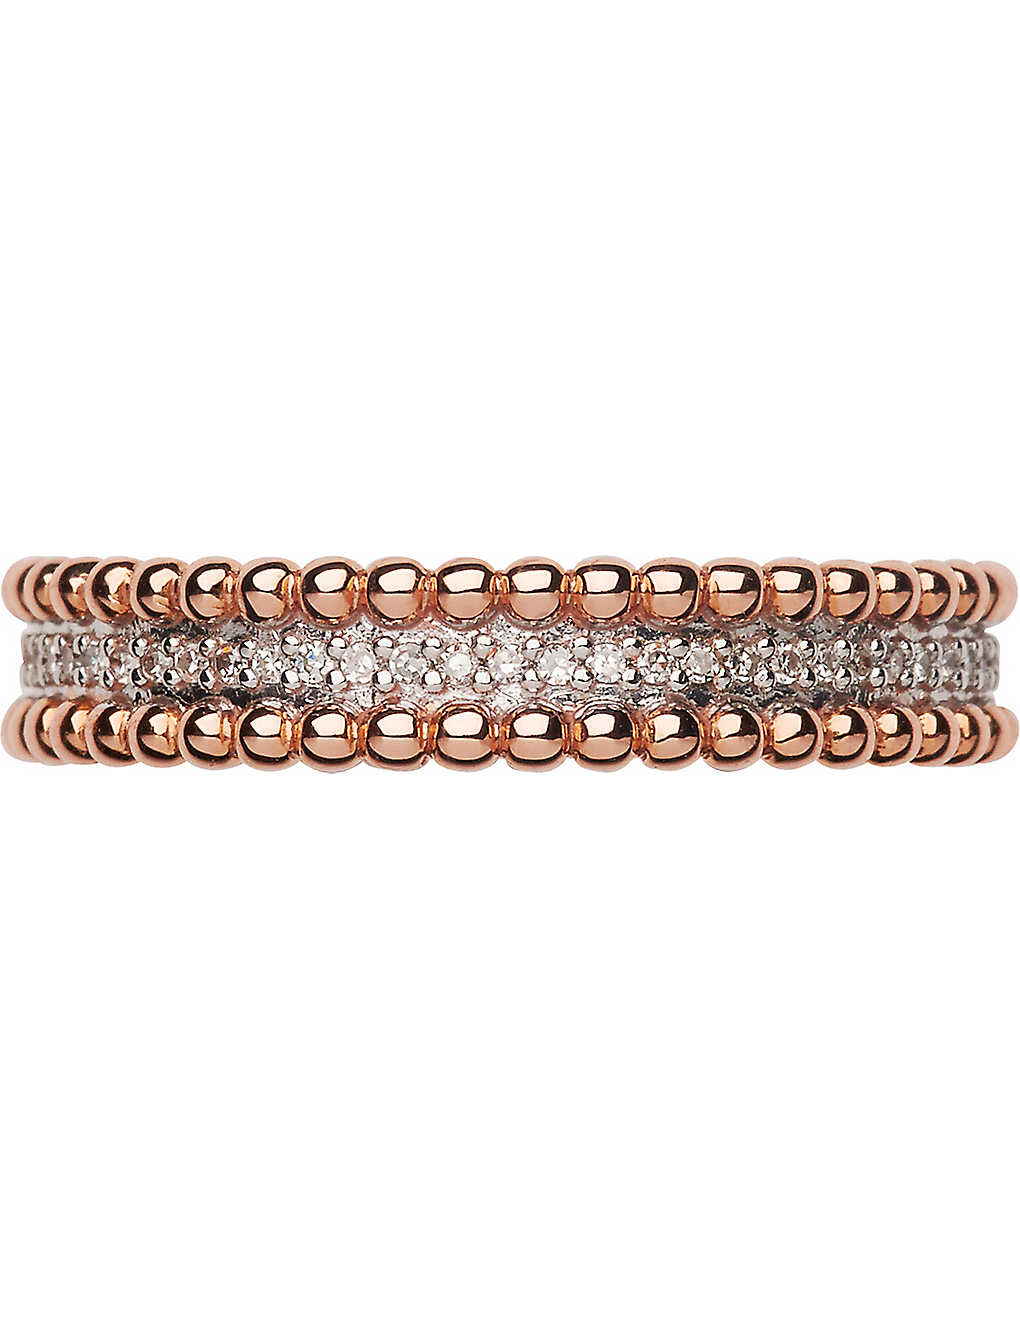 LINKS OF LONDON: Effervescence 18ct rose gold and diamond band ring